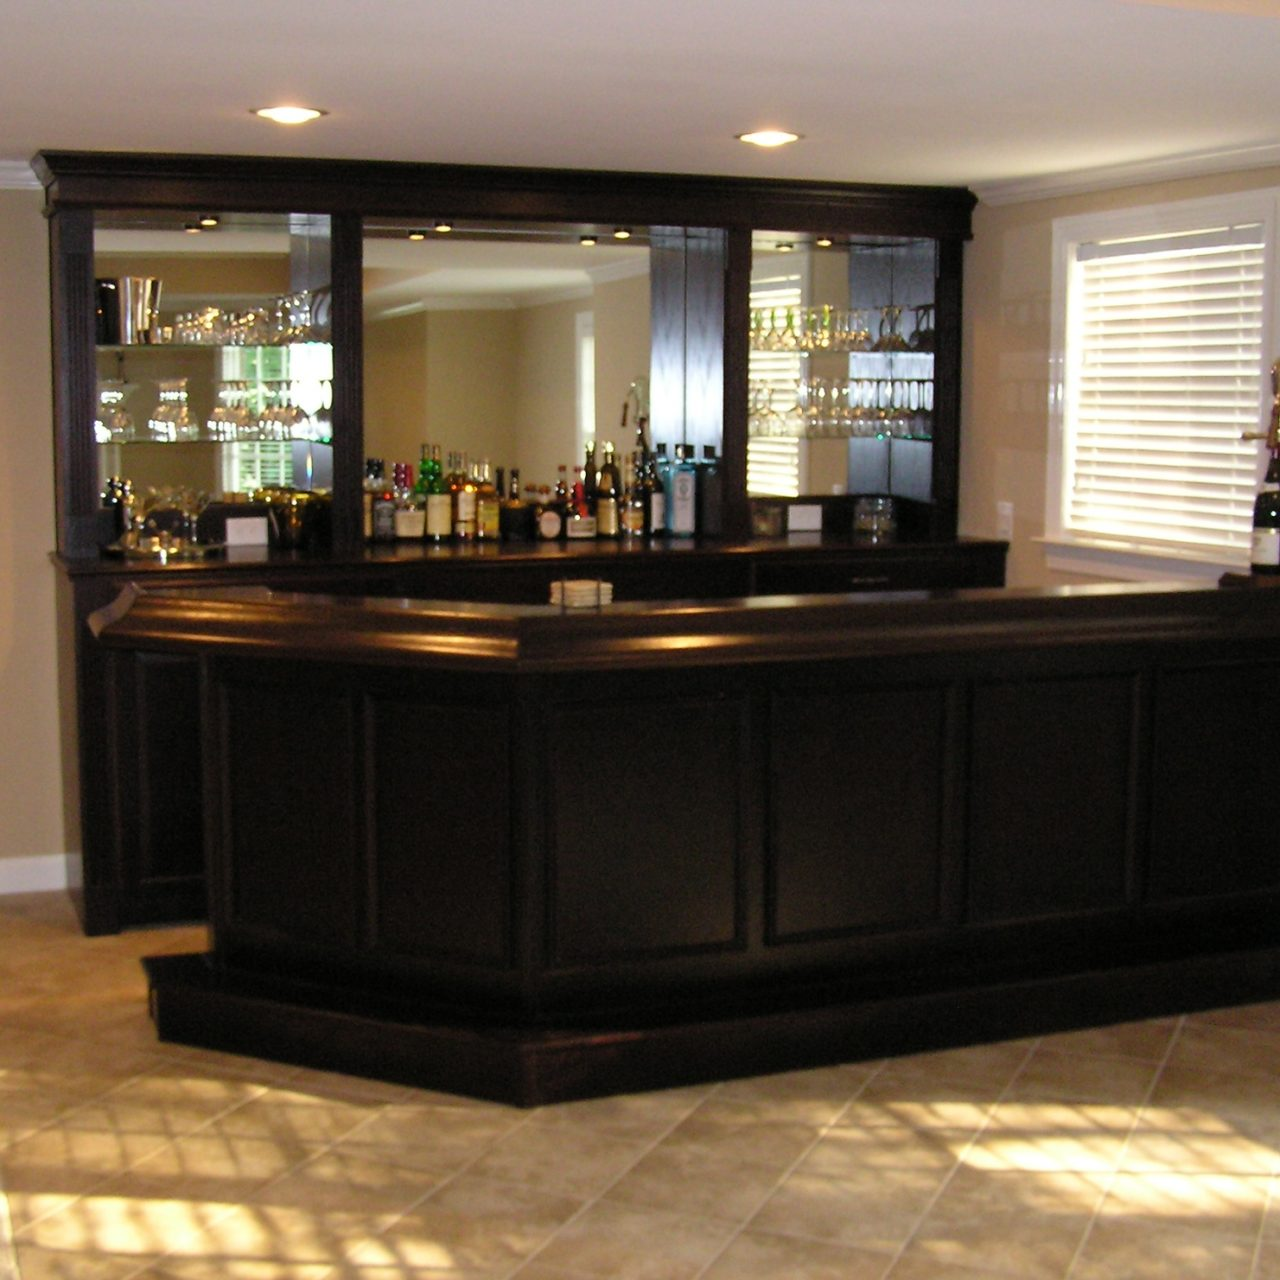 http://creativecabinetryinc.com/wp-content/uploads/2016/12/fb-bar-walnut-wood-dark-stained-1280x1280.jpg